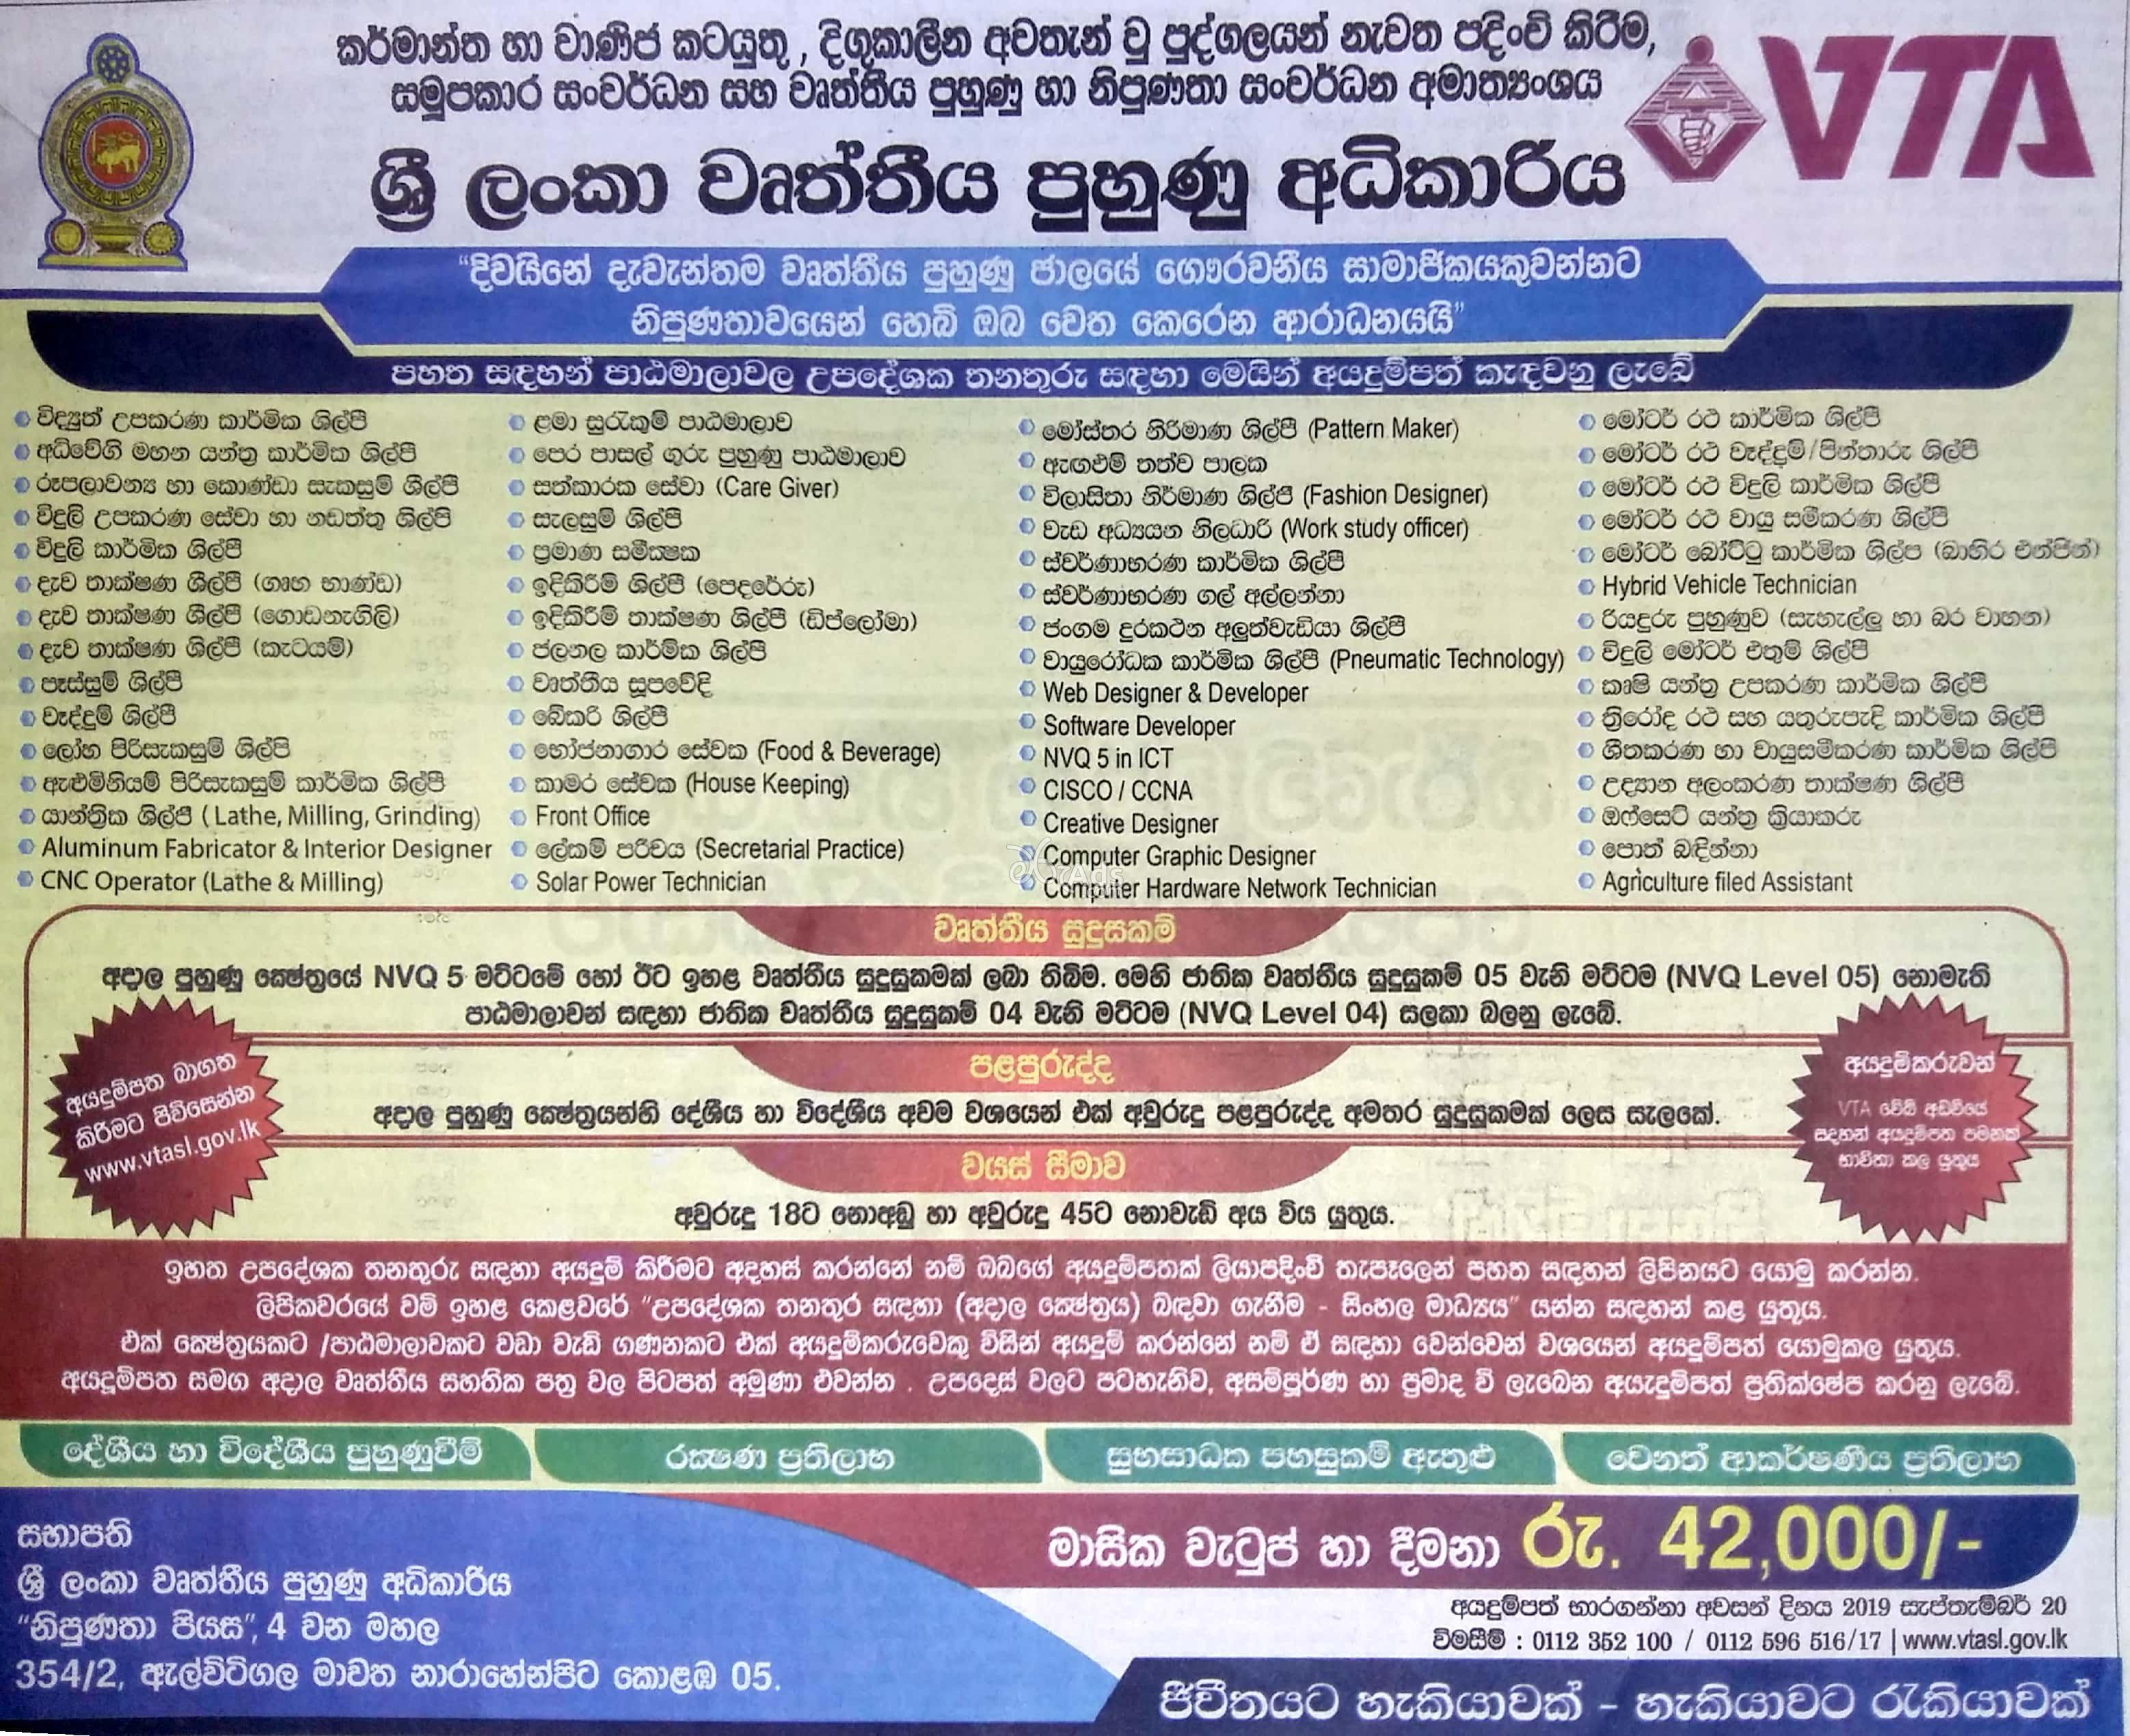 Consultant Government Vacancies At Vocational Training Authority Of Sri Lanka Vta Colombo 05